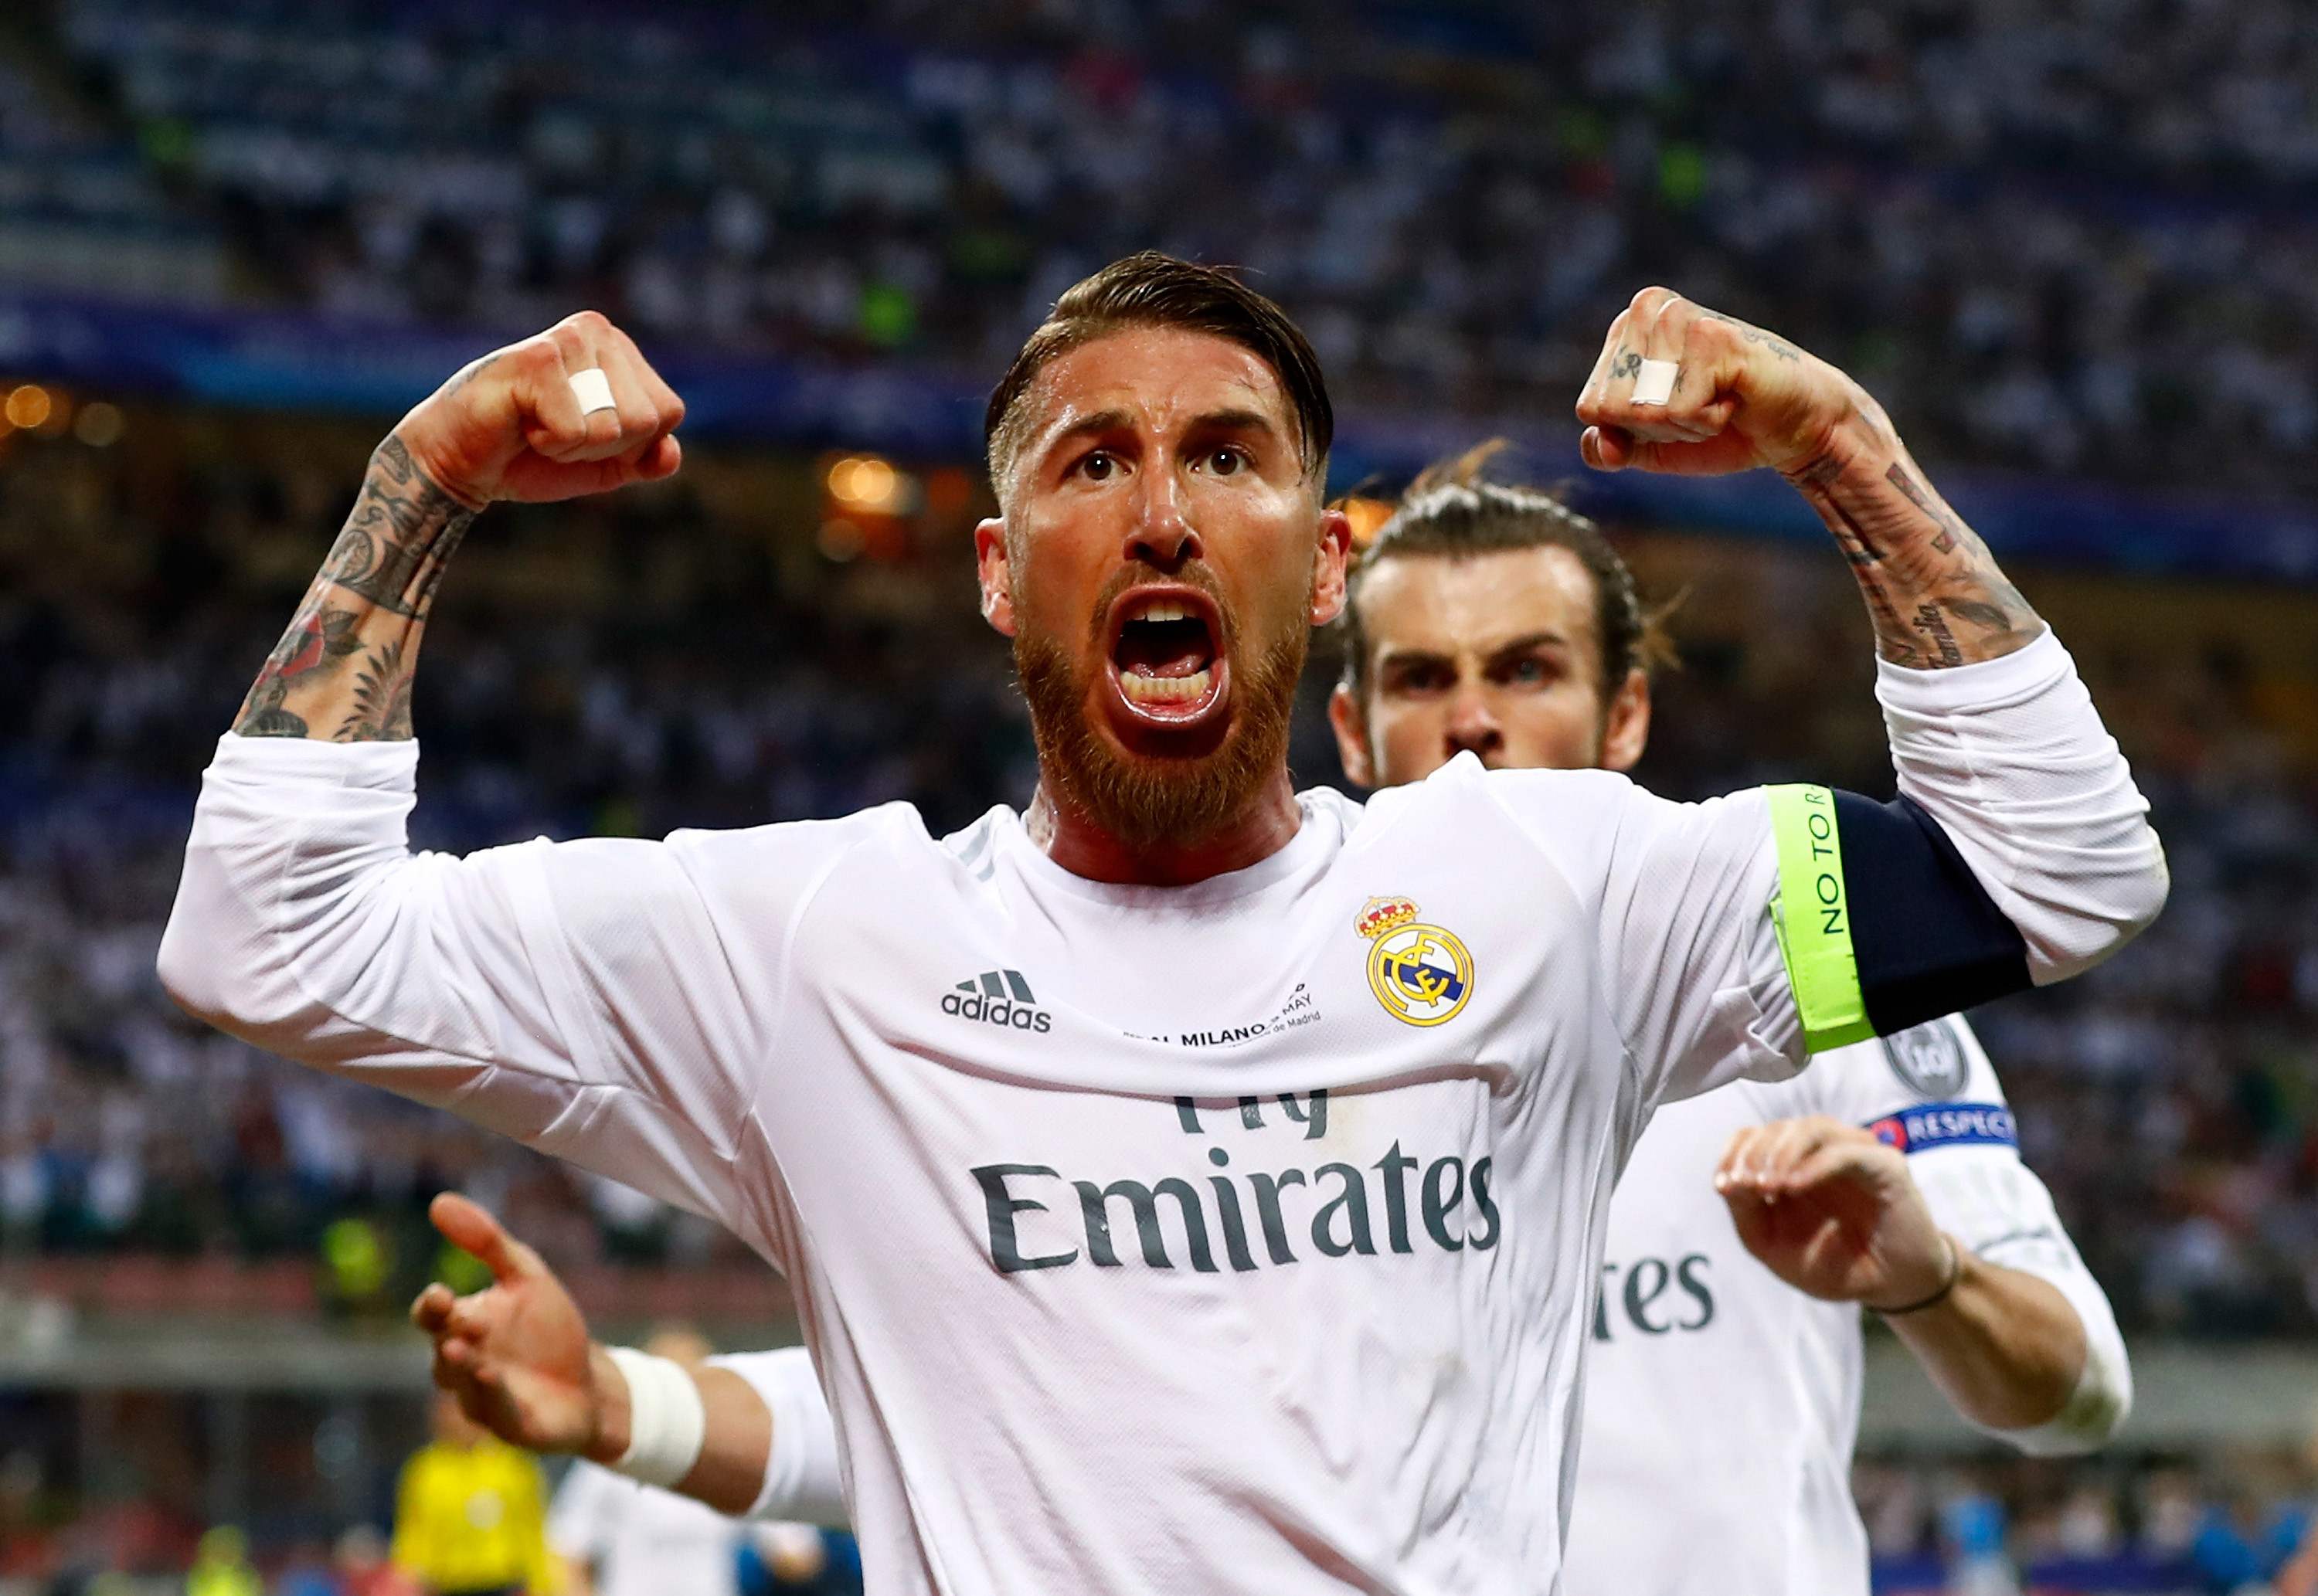 Real Madrid v Atletico Madrid Champions League: Sergio Ramos goal should not have counted | Metro News